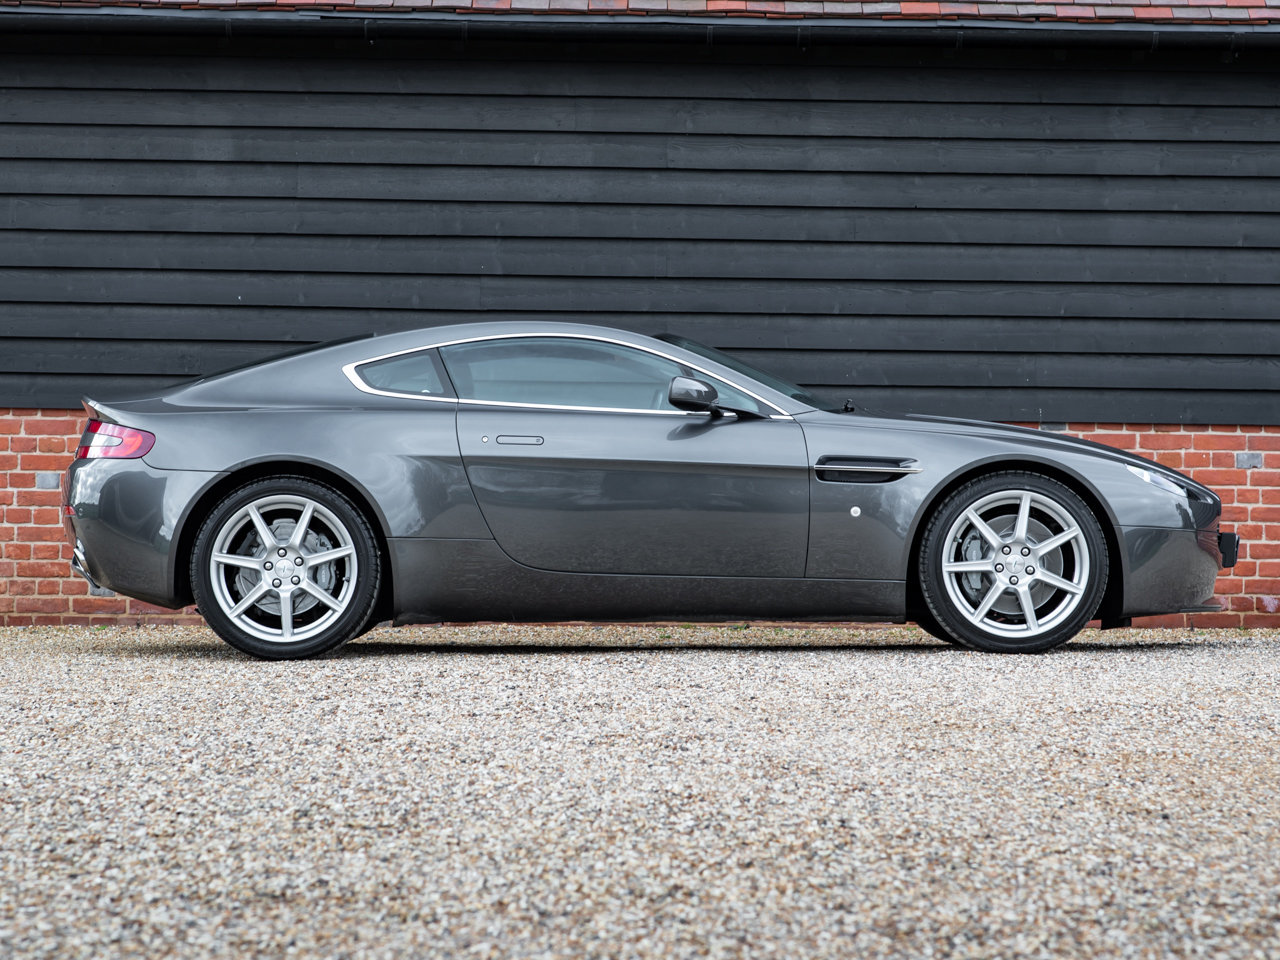 2008 Aston Martin V8 Vantage - Manual For Sale (picture 2 of 12)